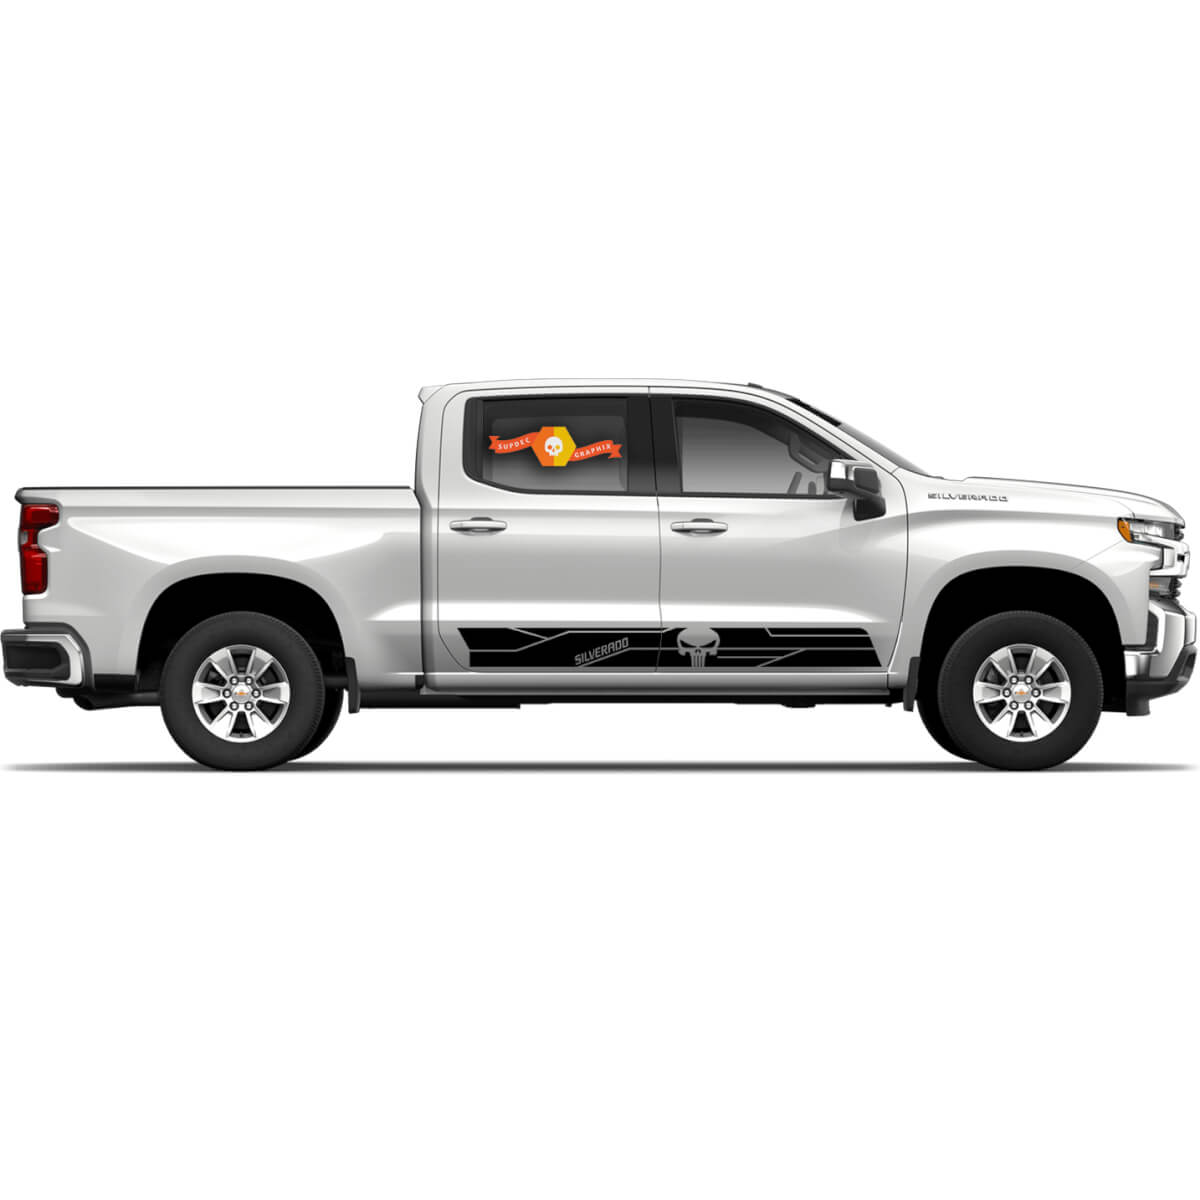 2 x Chevy Chevrolet Silverado Punisher Skull Vinyl Decal Sticker Graphics Side Door